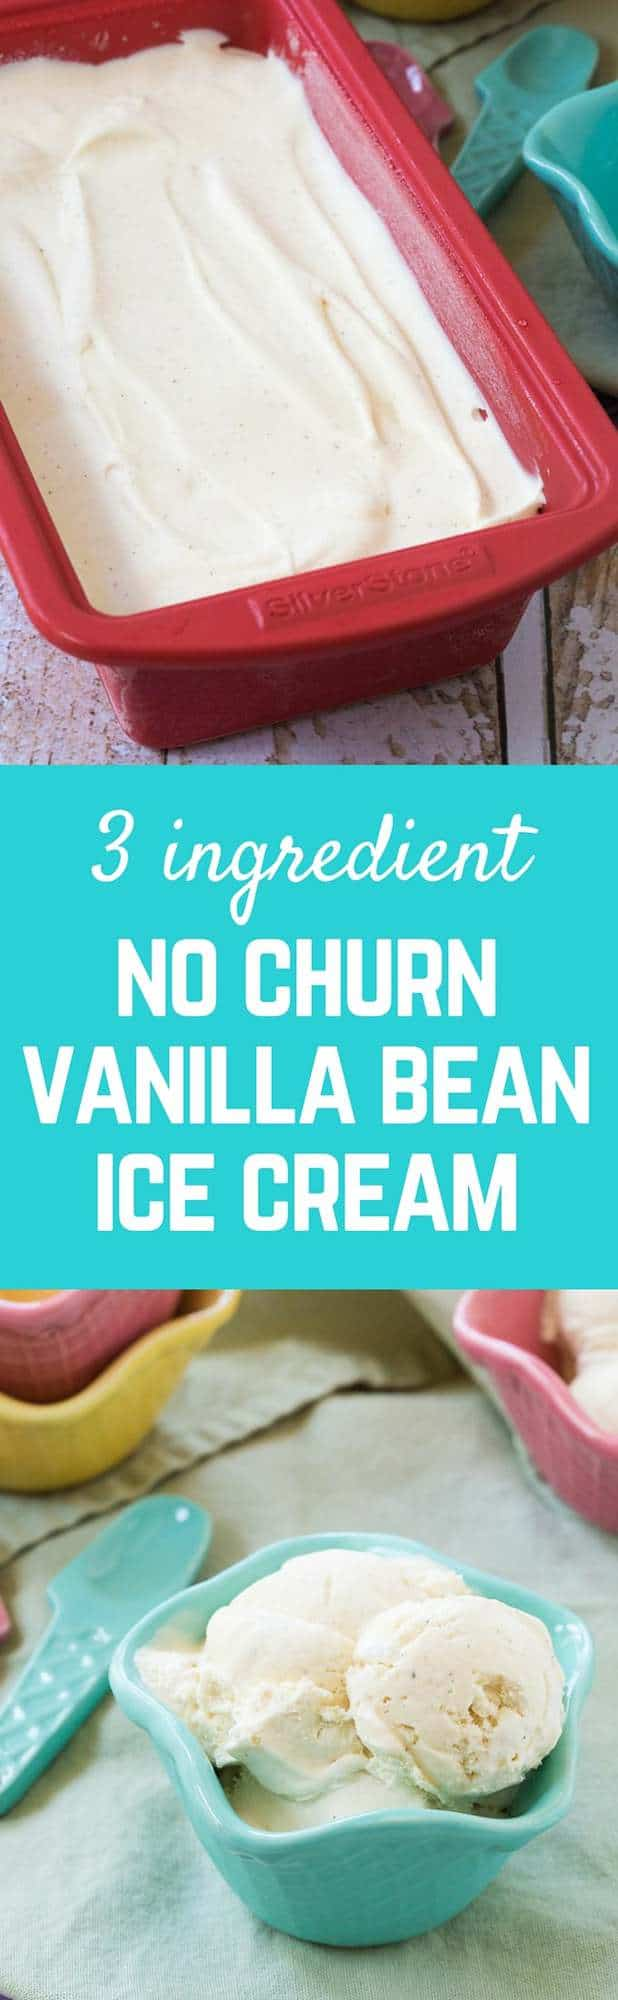 Vanilla bean ice cream is easily made at home -- three ingredients are all you need! No ice cream machine required. Summer just got much easier. Get the easy ice cream recipe on RachelCooks.com!